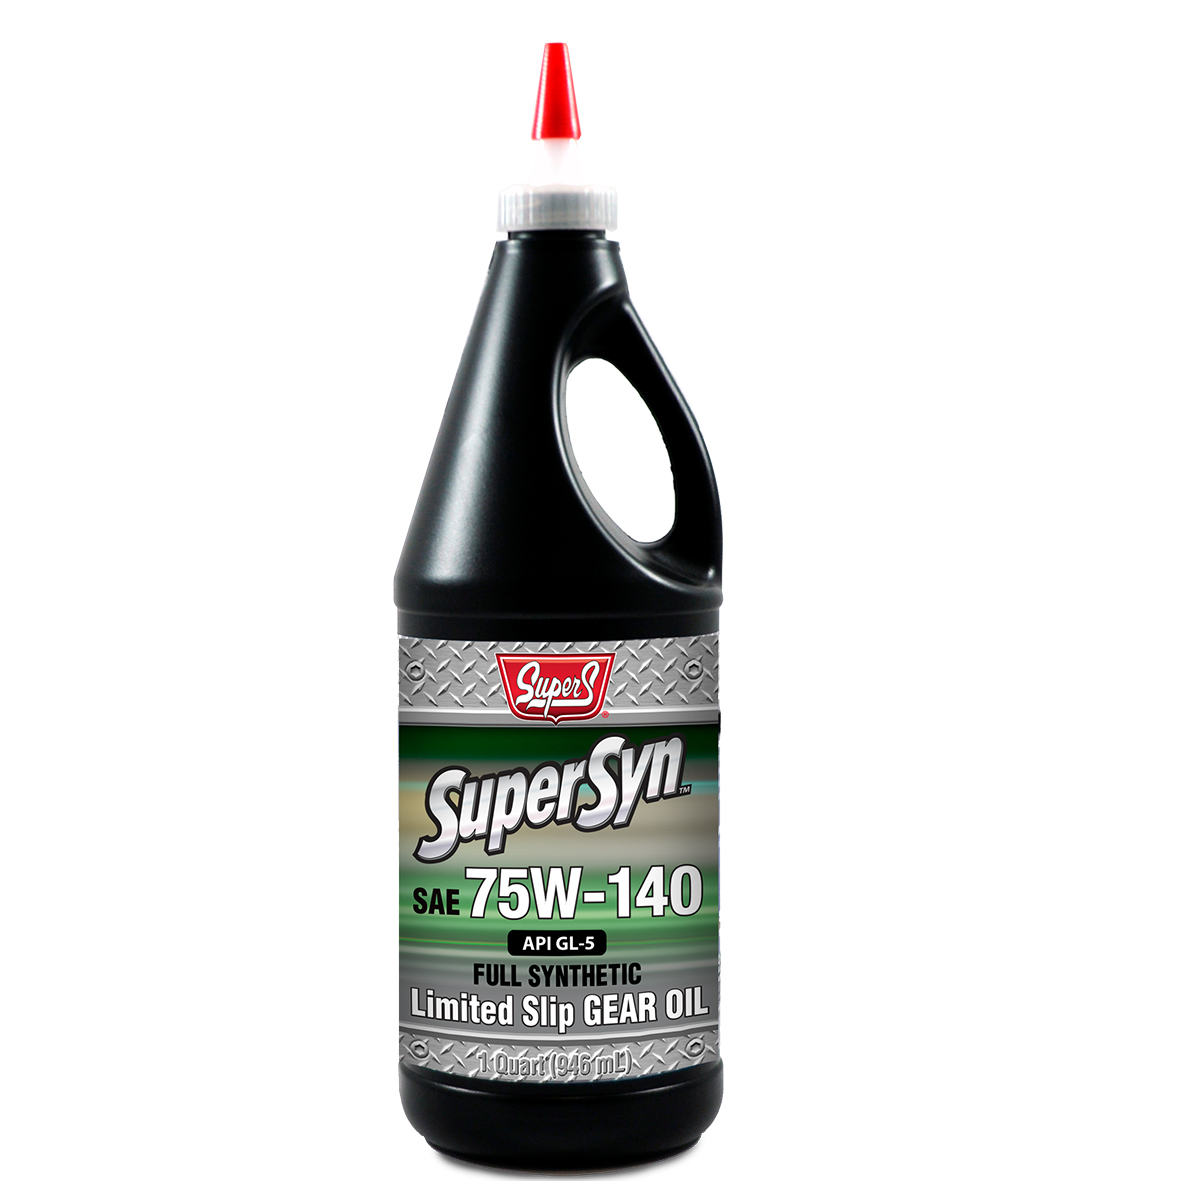 SUPER S SUPERSYN SYNTHETIC 75W-140 LIMITED SLIP GL-5 GEAR OIL